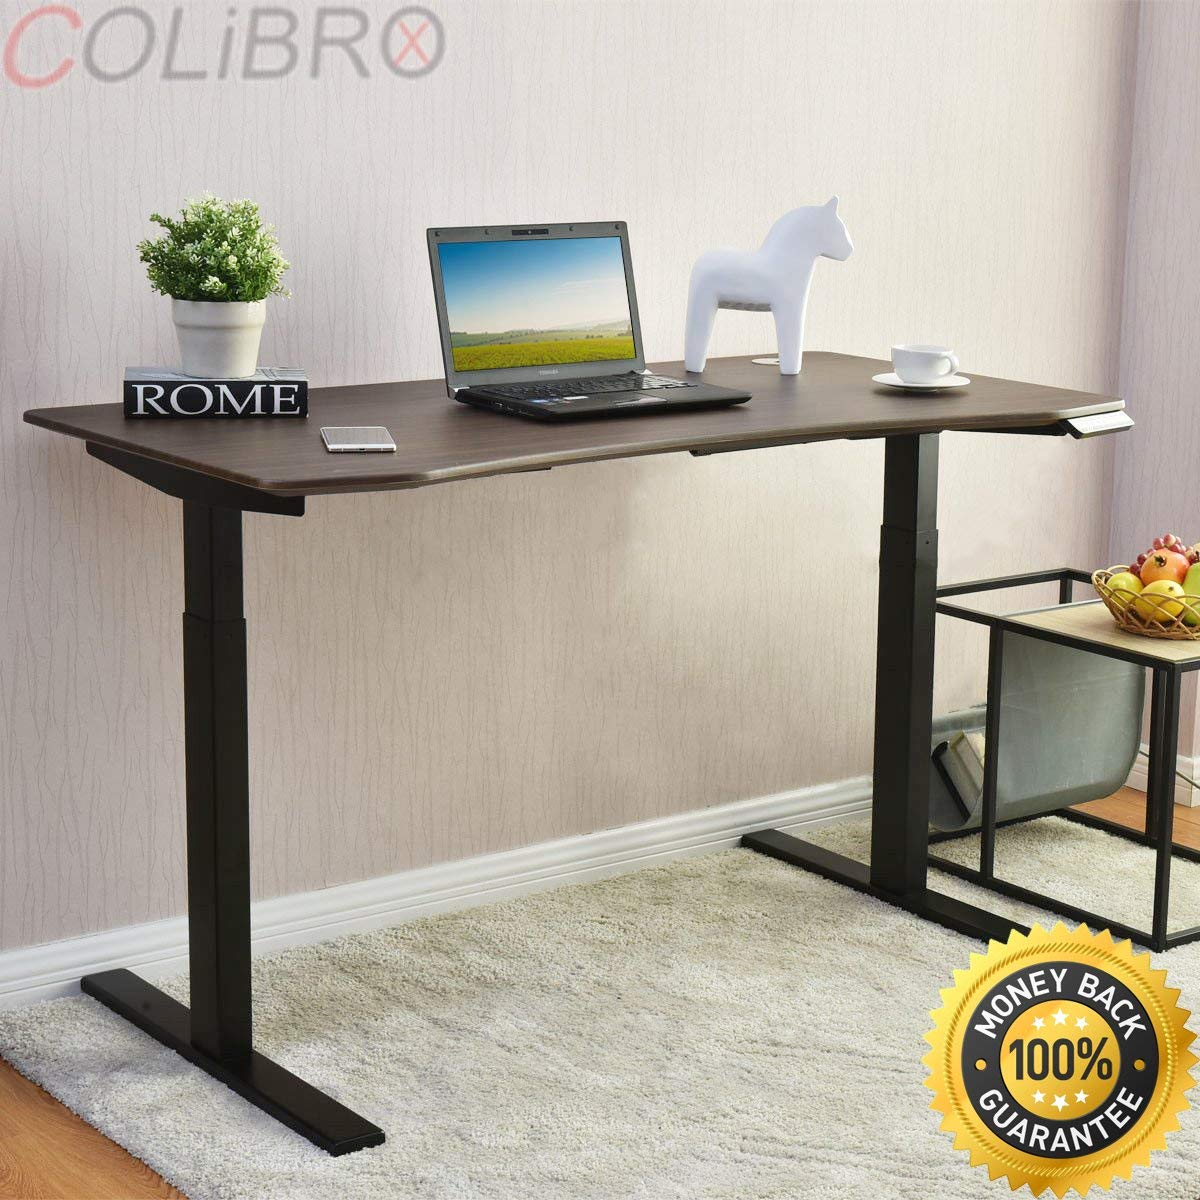 """COLIBROX--55"""" Wide 7-Button Electric Sit to Stand Desk Height Adjustable 28""""- 47"""" Walnut. uplift height adjustable sit stand desk. electric sit stand desk. best standing desk on amazon."""